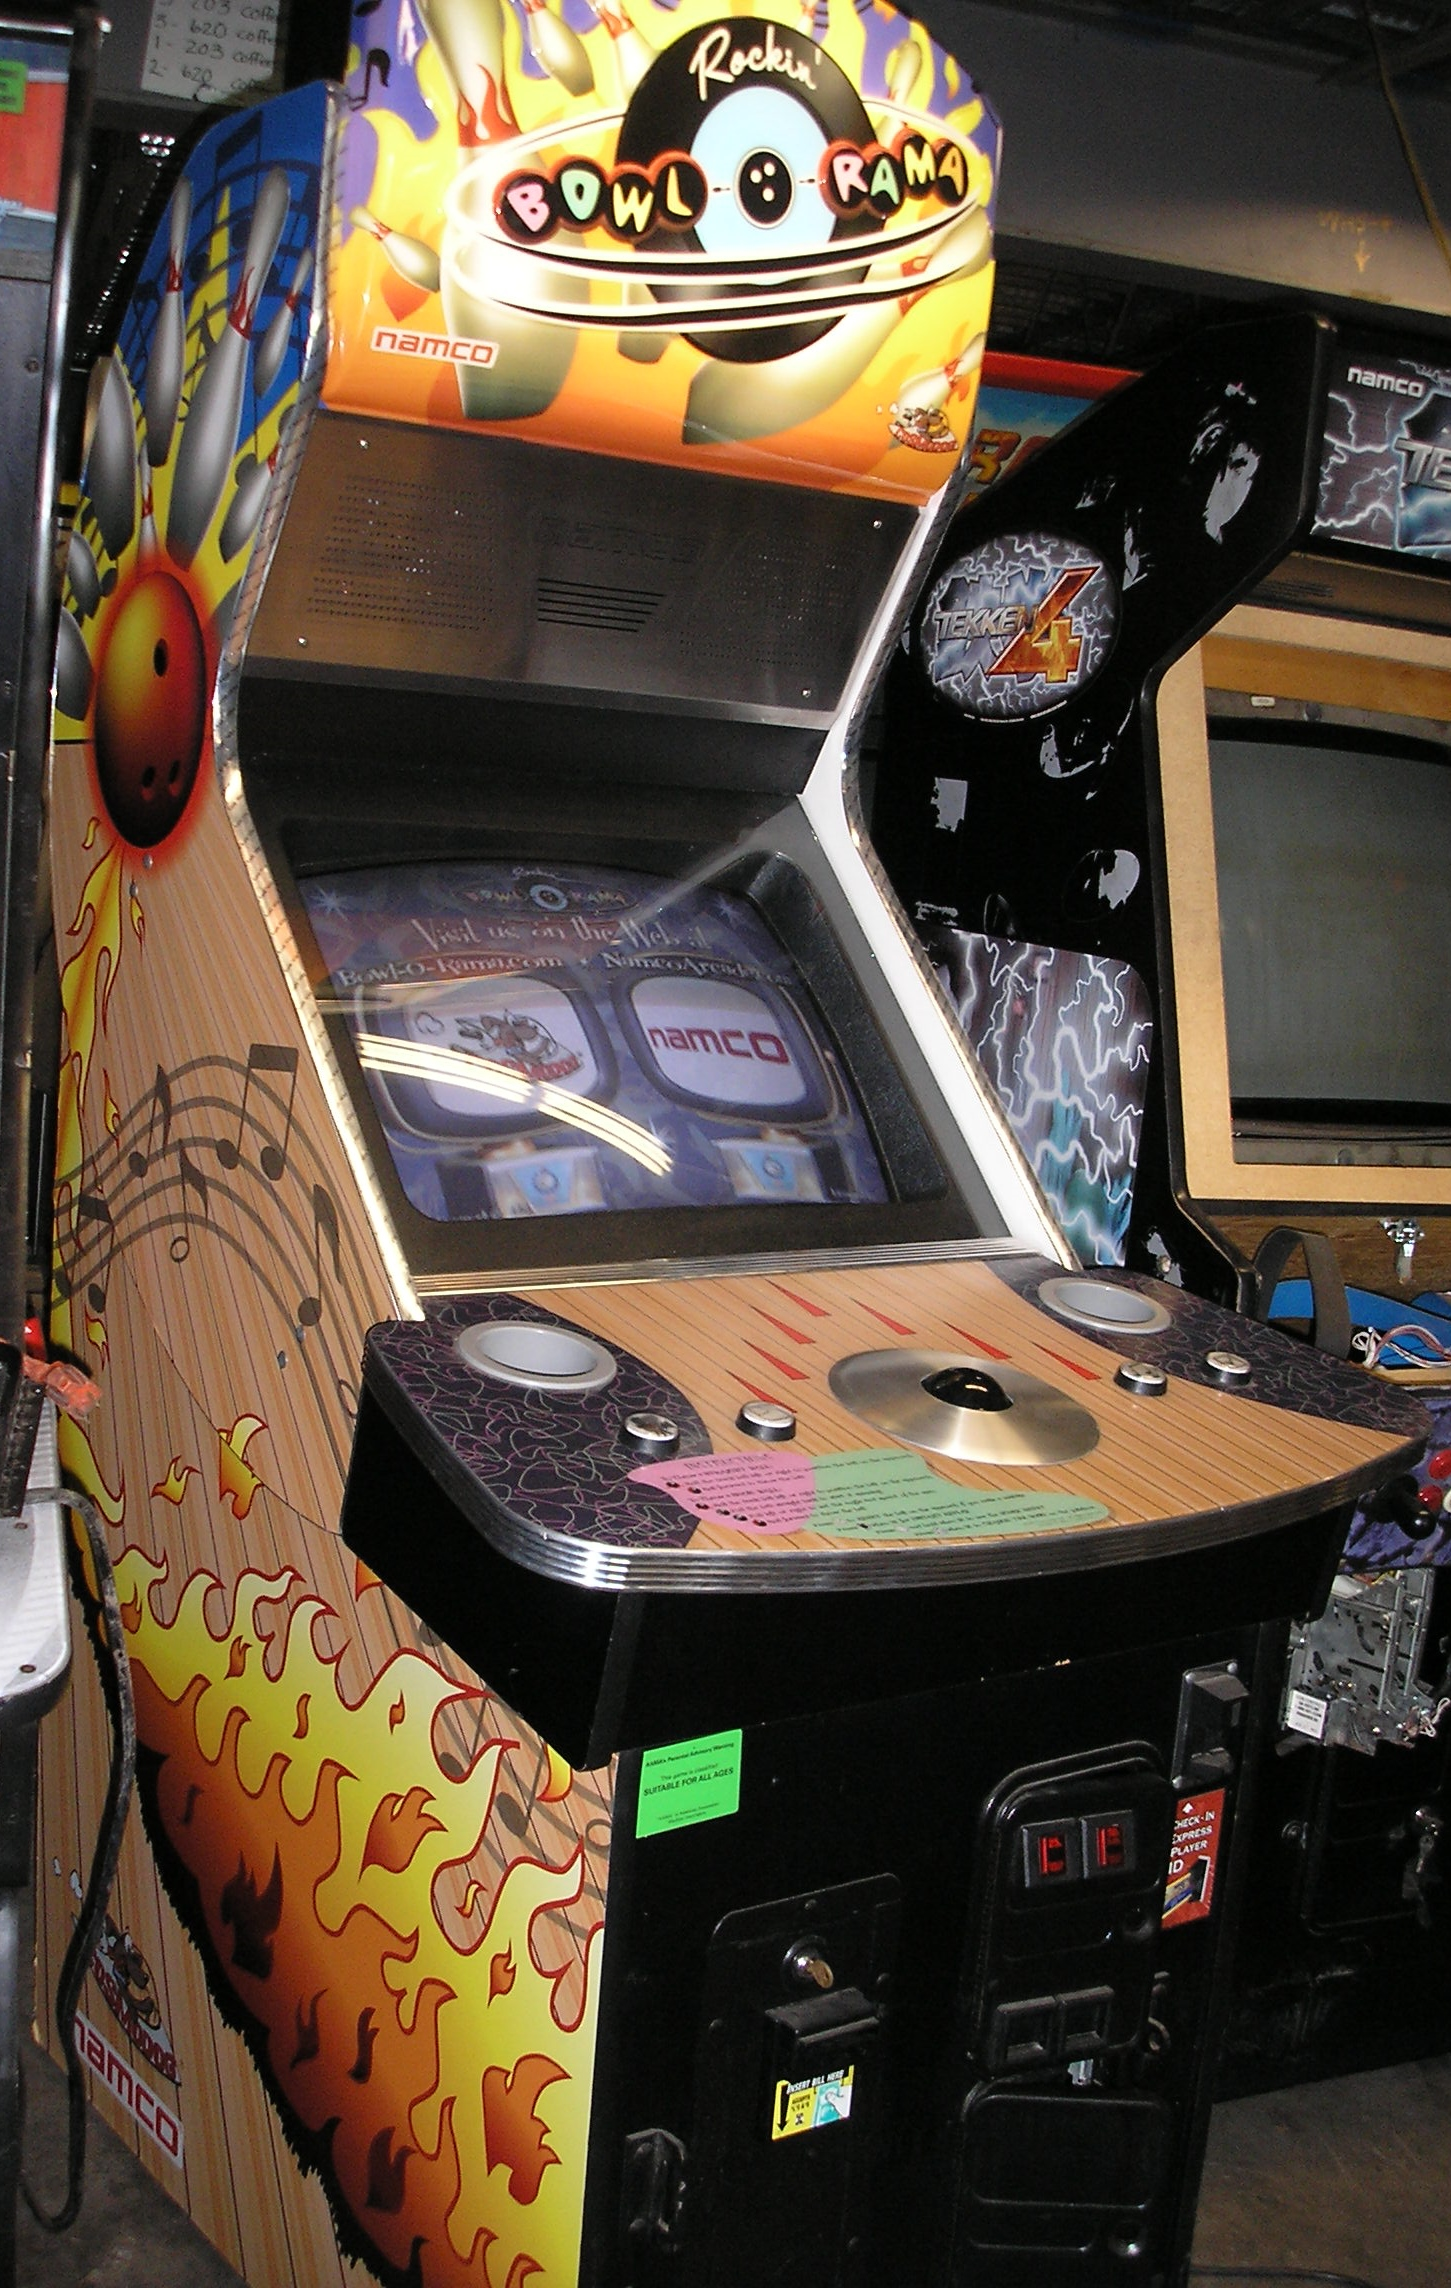 Used Arcade Games Sale : Rockin bowl o rama arcade machine game for sale by namco